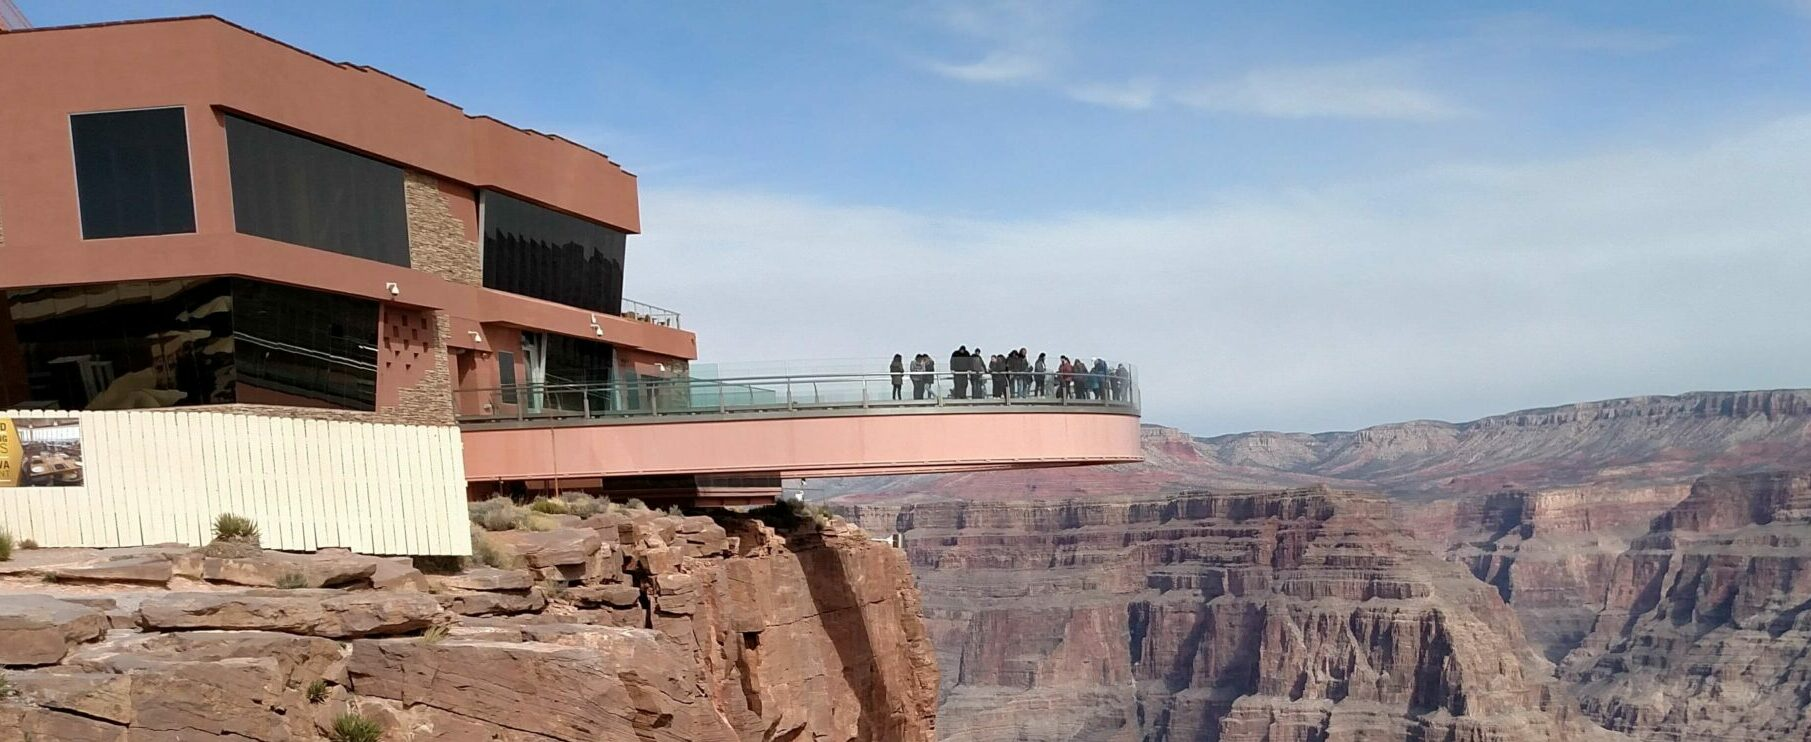 Things To Do In Grand Canyon National Park - Skywalk